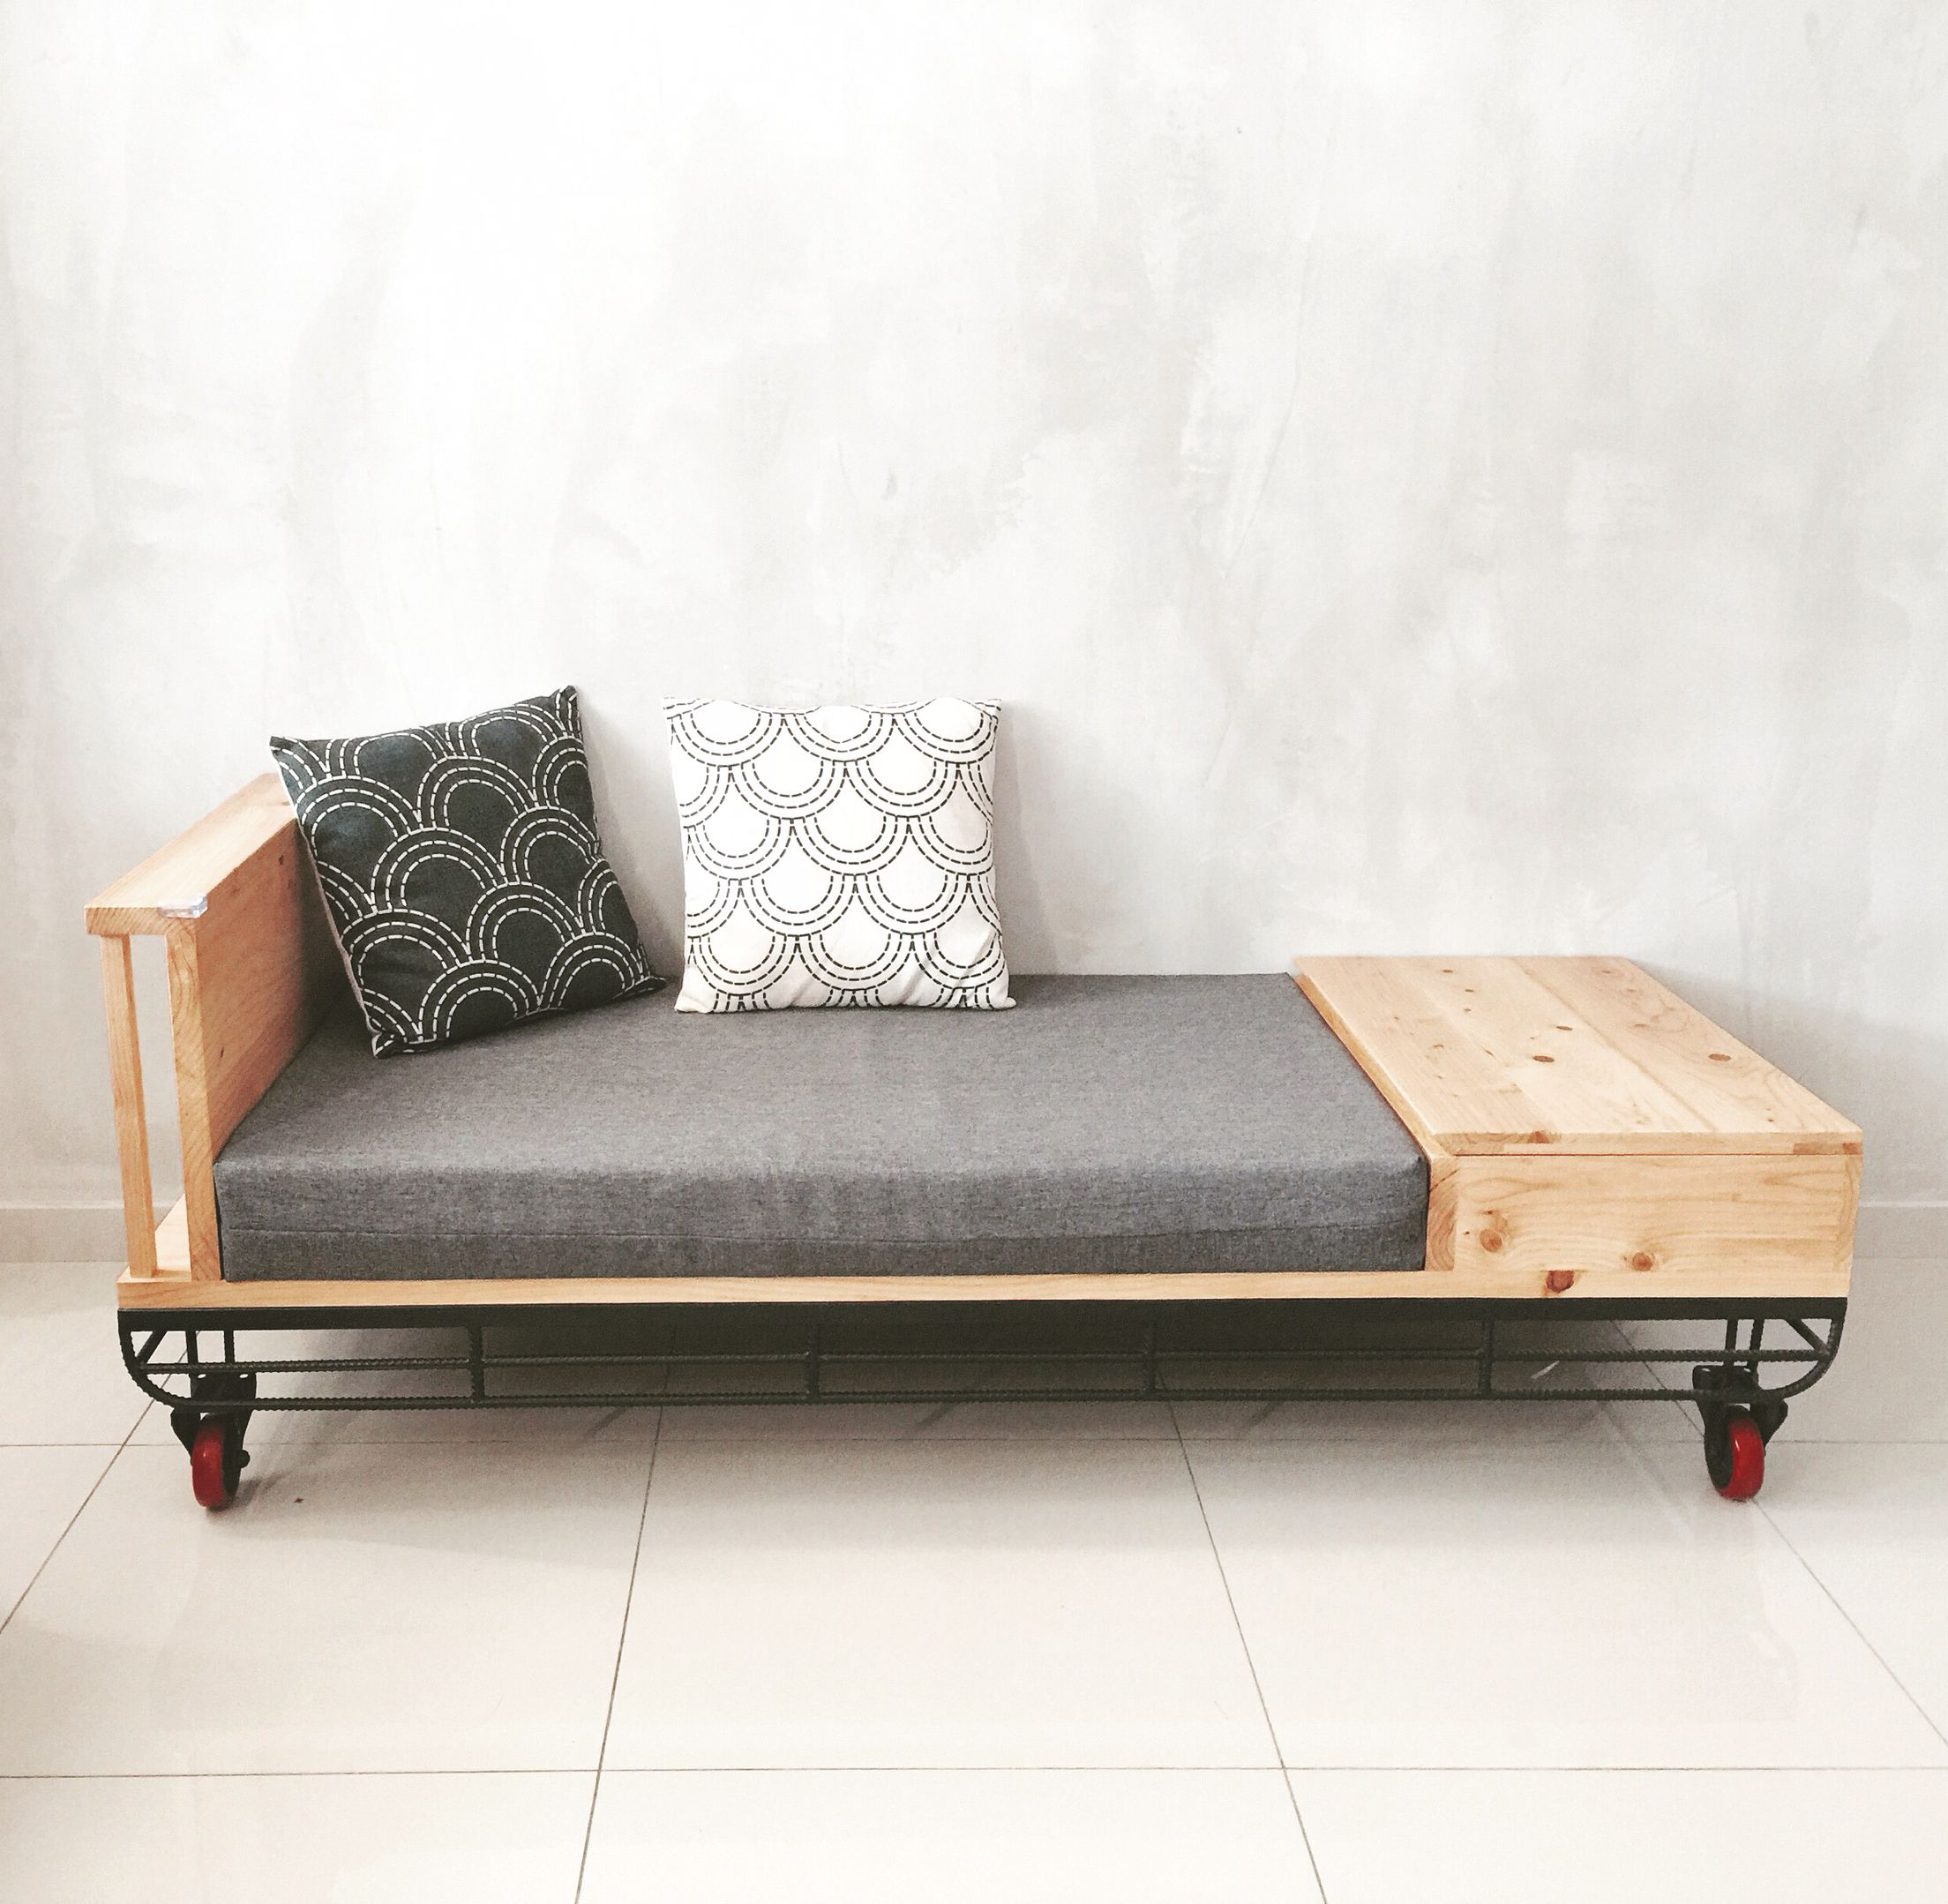 Furniture By Mcdangdang Sofa Design From Malaysia With Images Sofa Design Furniture Home Decor